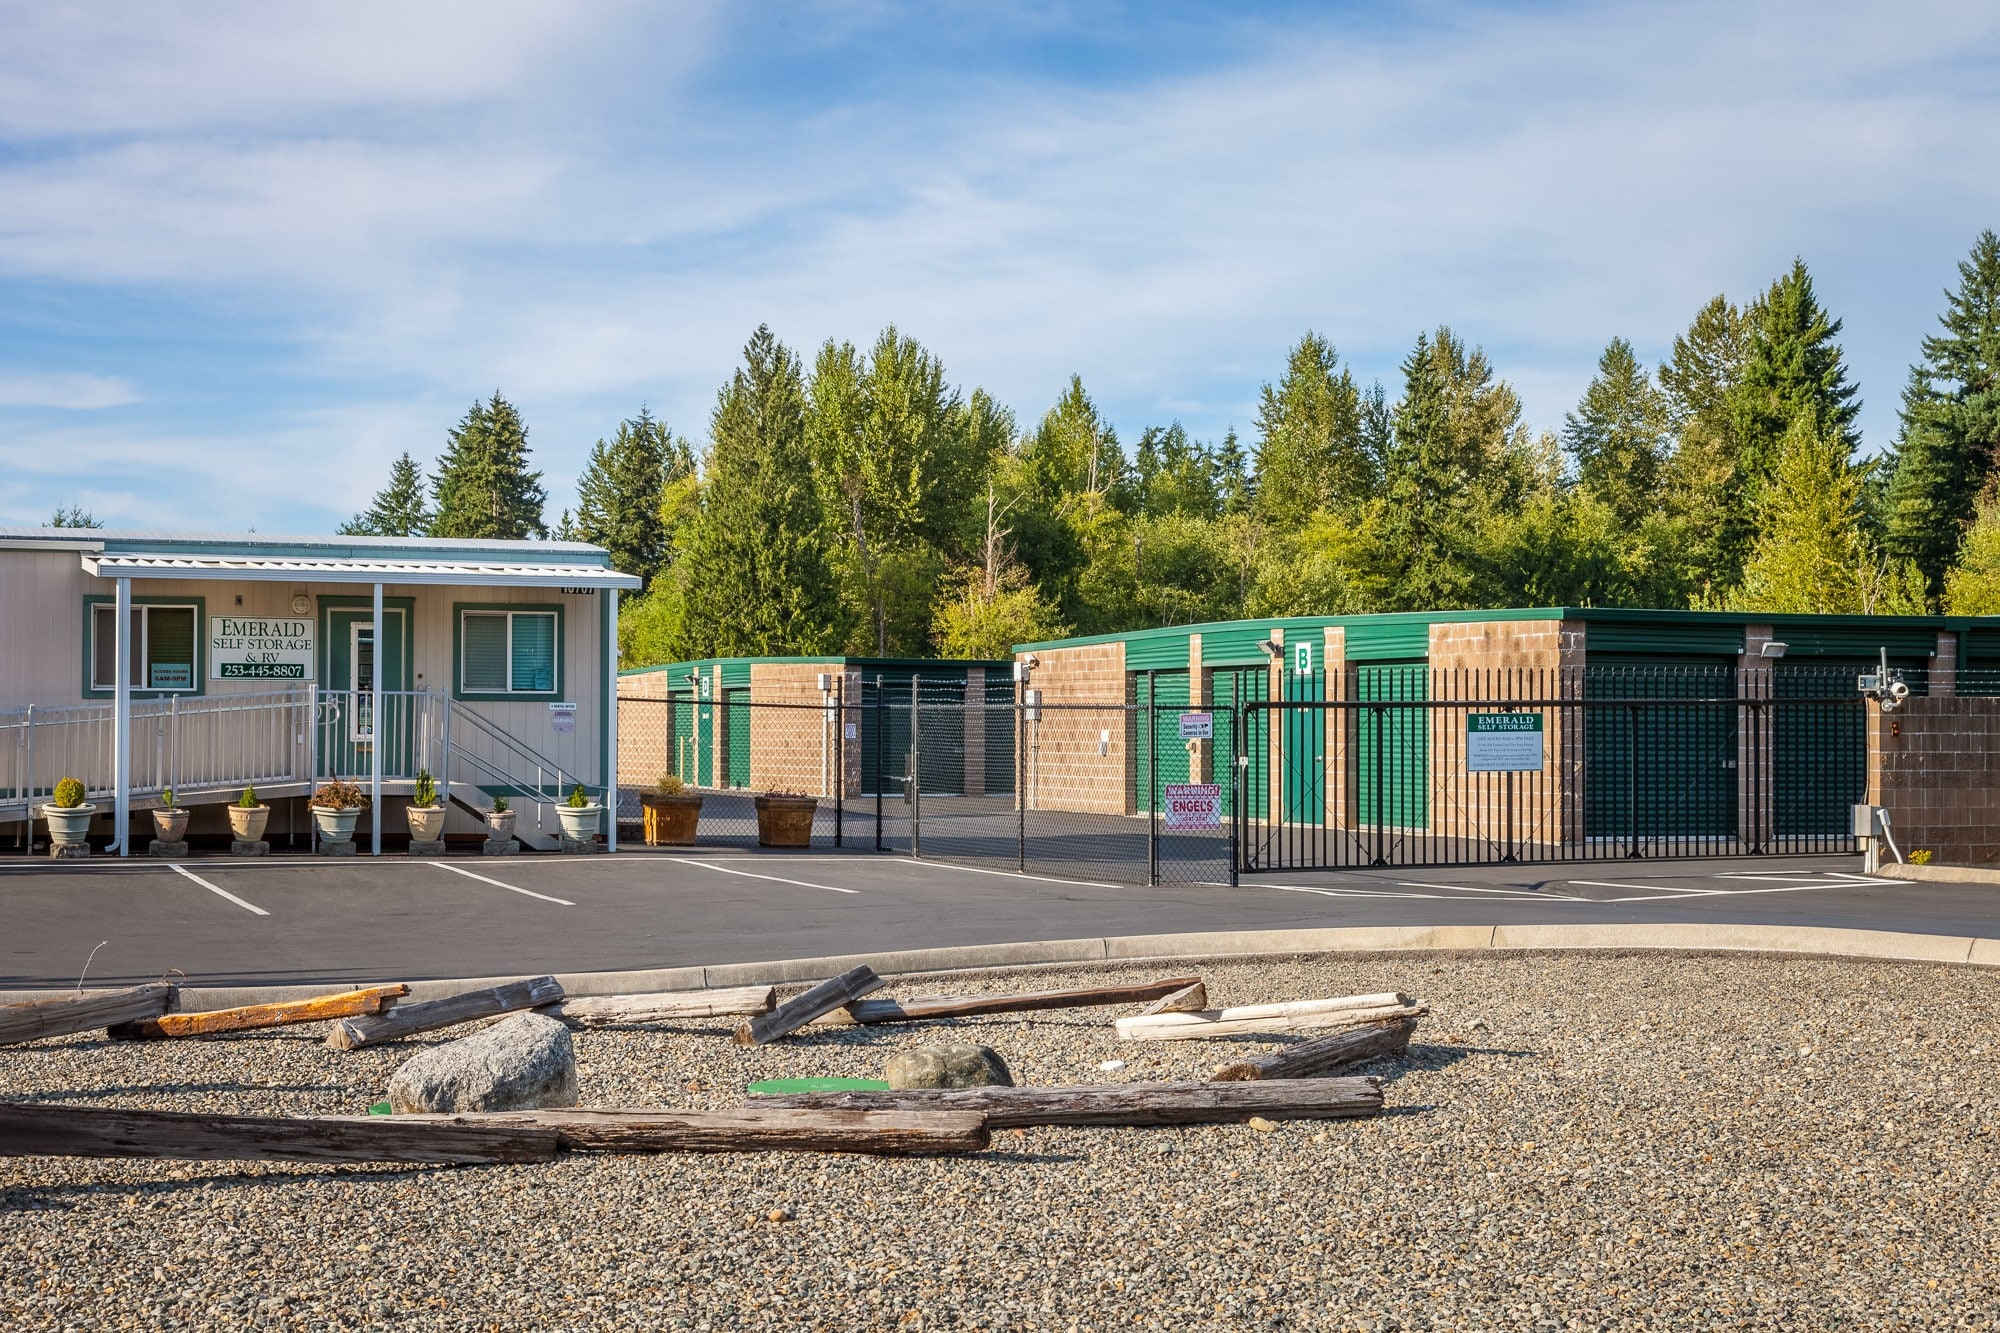 Self storage for all of your needs in Puyallup, WA